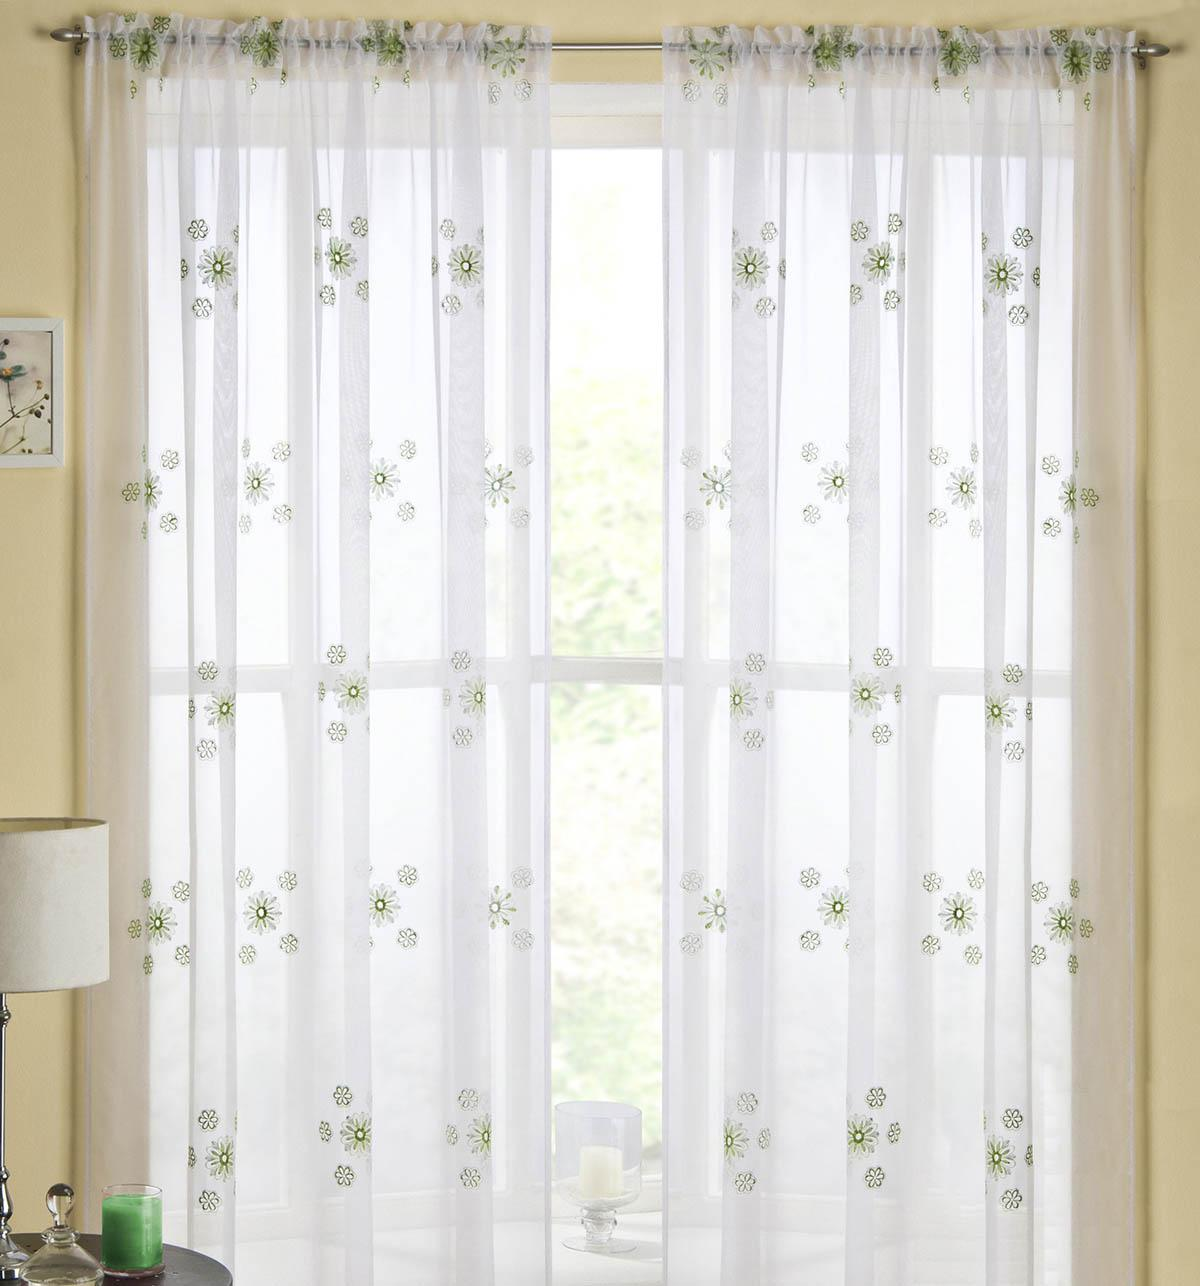 Green Adelaide Rod Pocket Voile Panel